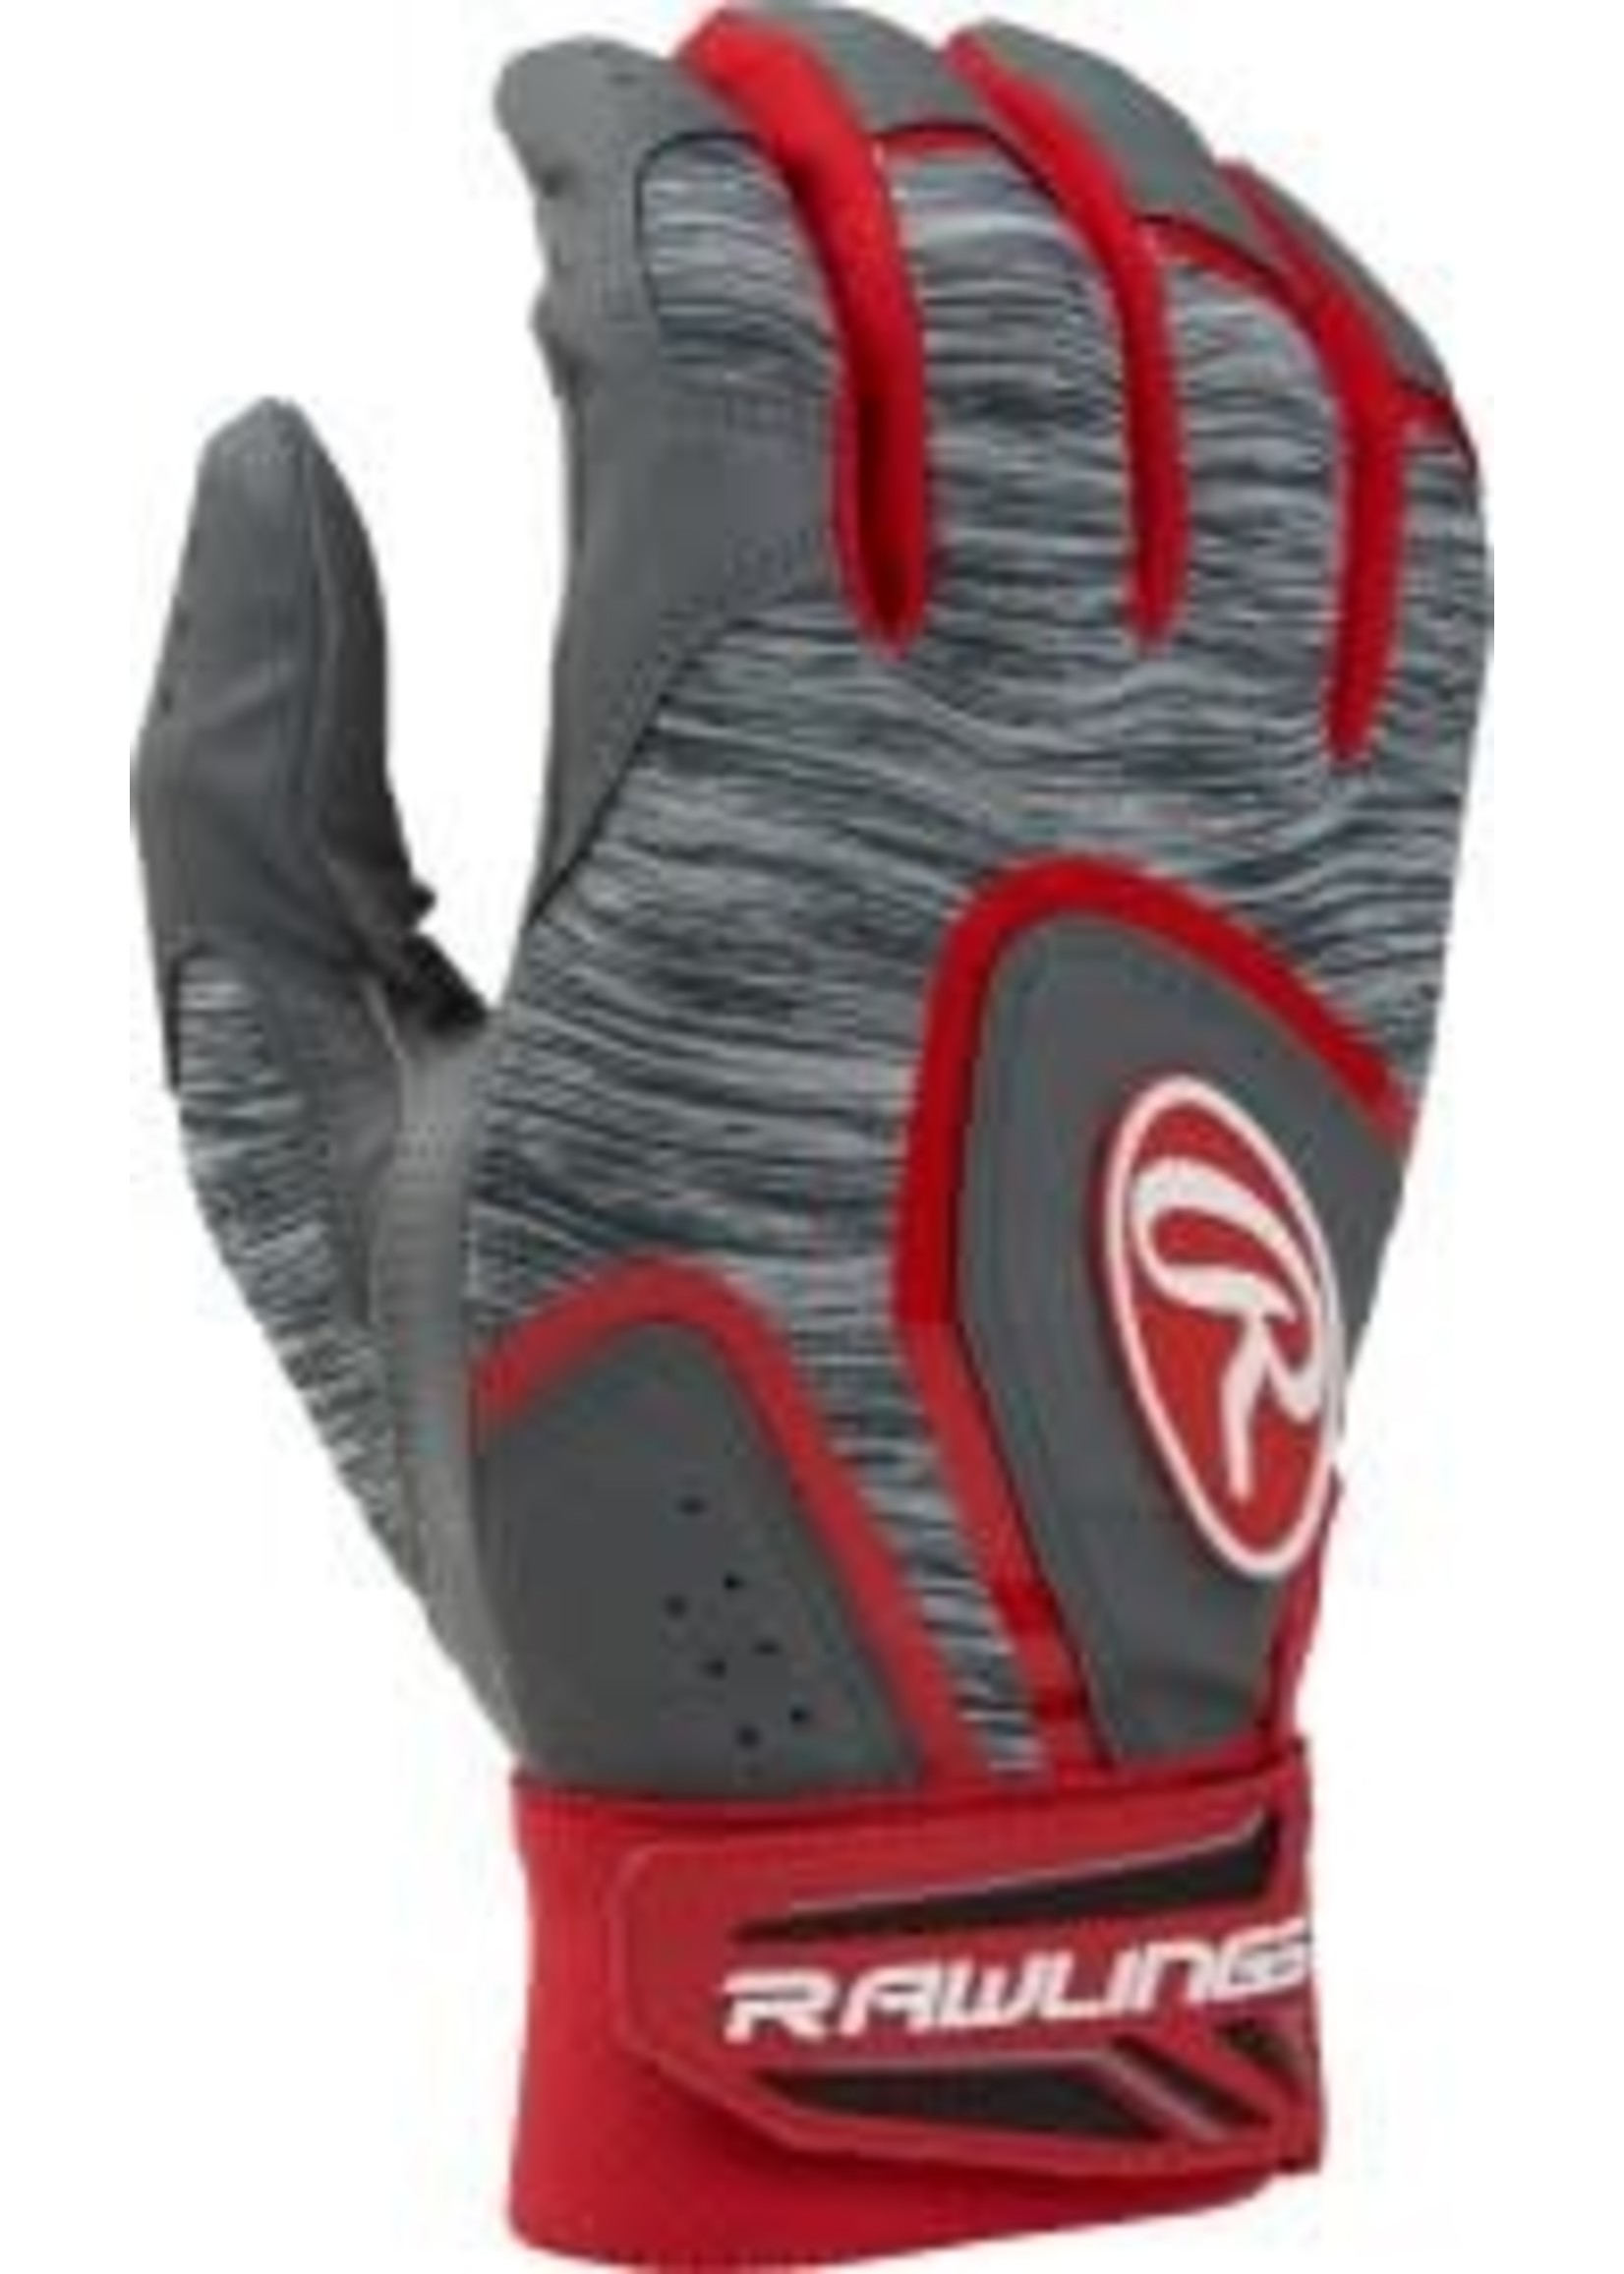 Rawlings RAWLINGS 5150 BATTING GLOVES ROUGE ADULT